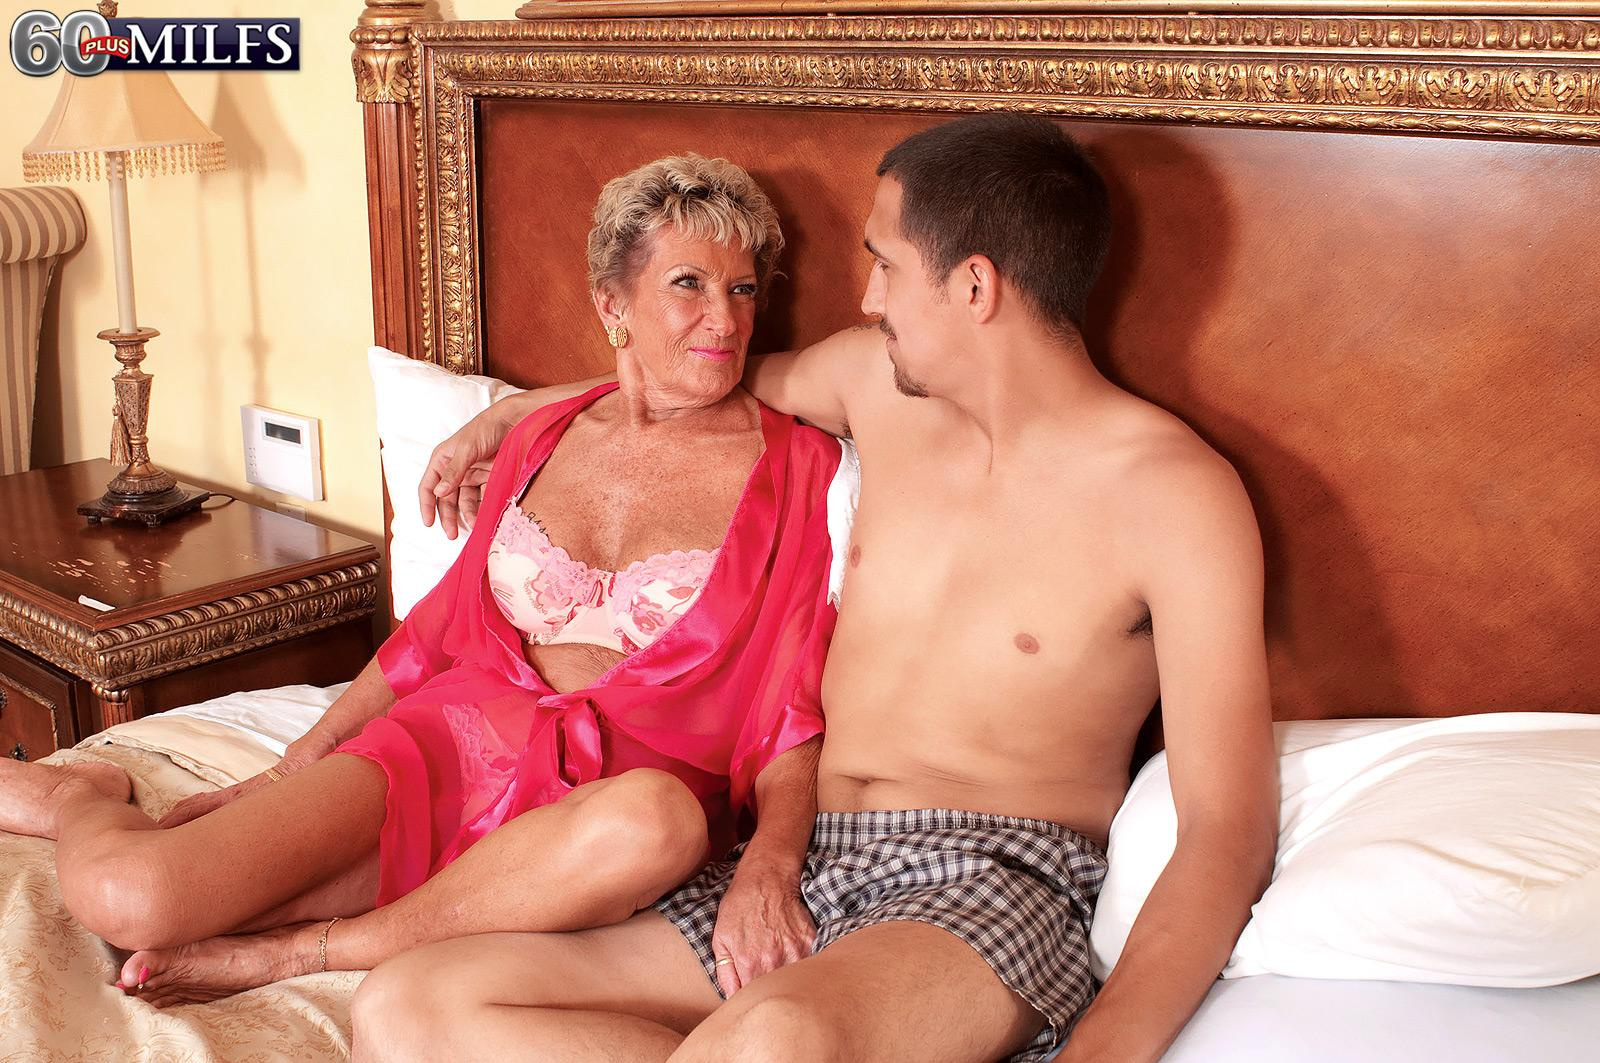 Facial Mature Porn Milf Over Milfs Plus Ann Facial Birthday Sandra ...: www.older-mature.net/facial-mature-porn/246969.html